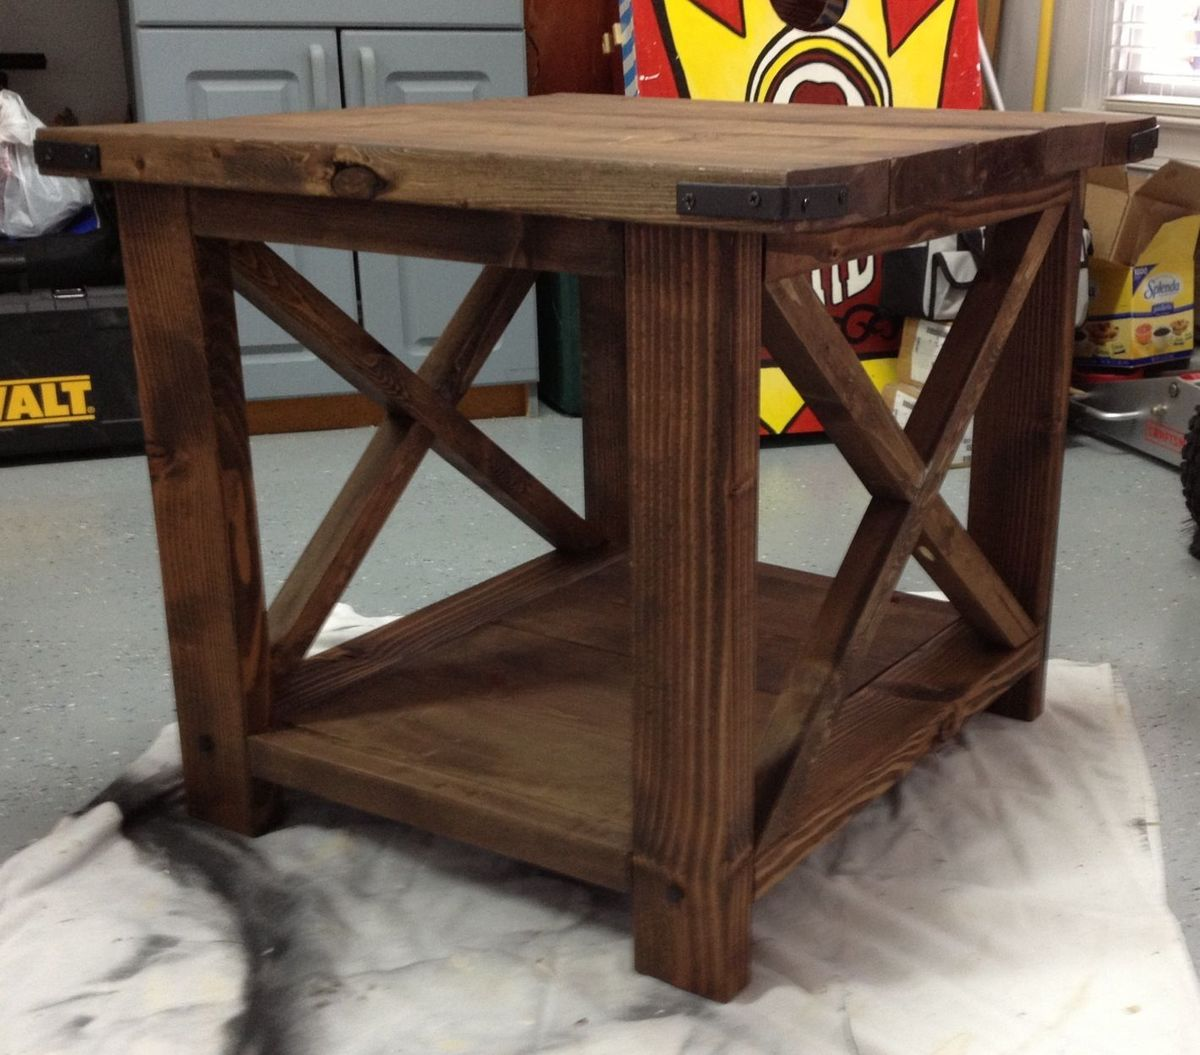 Ana white our rustic end table diy projects our rustic end table solutioingenieria Choice Image